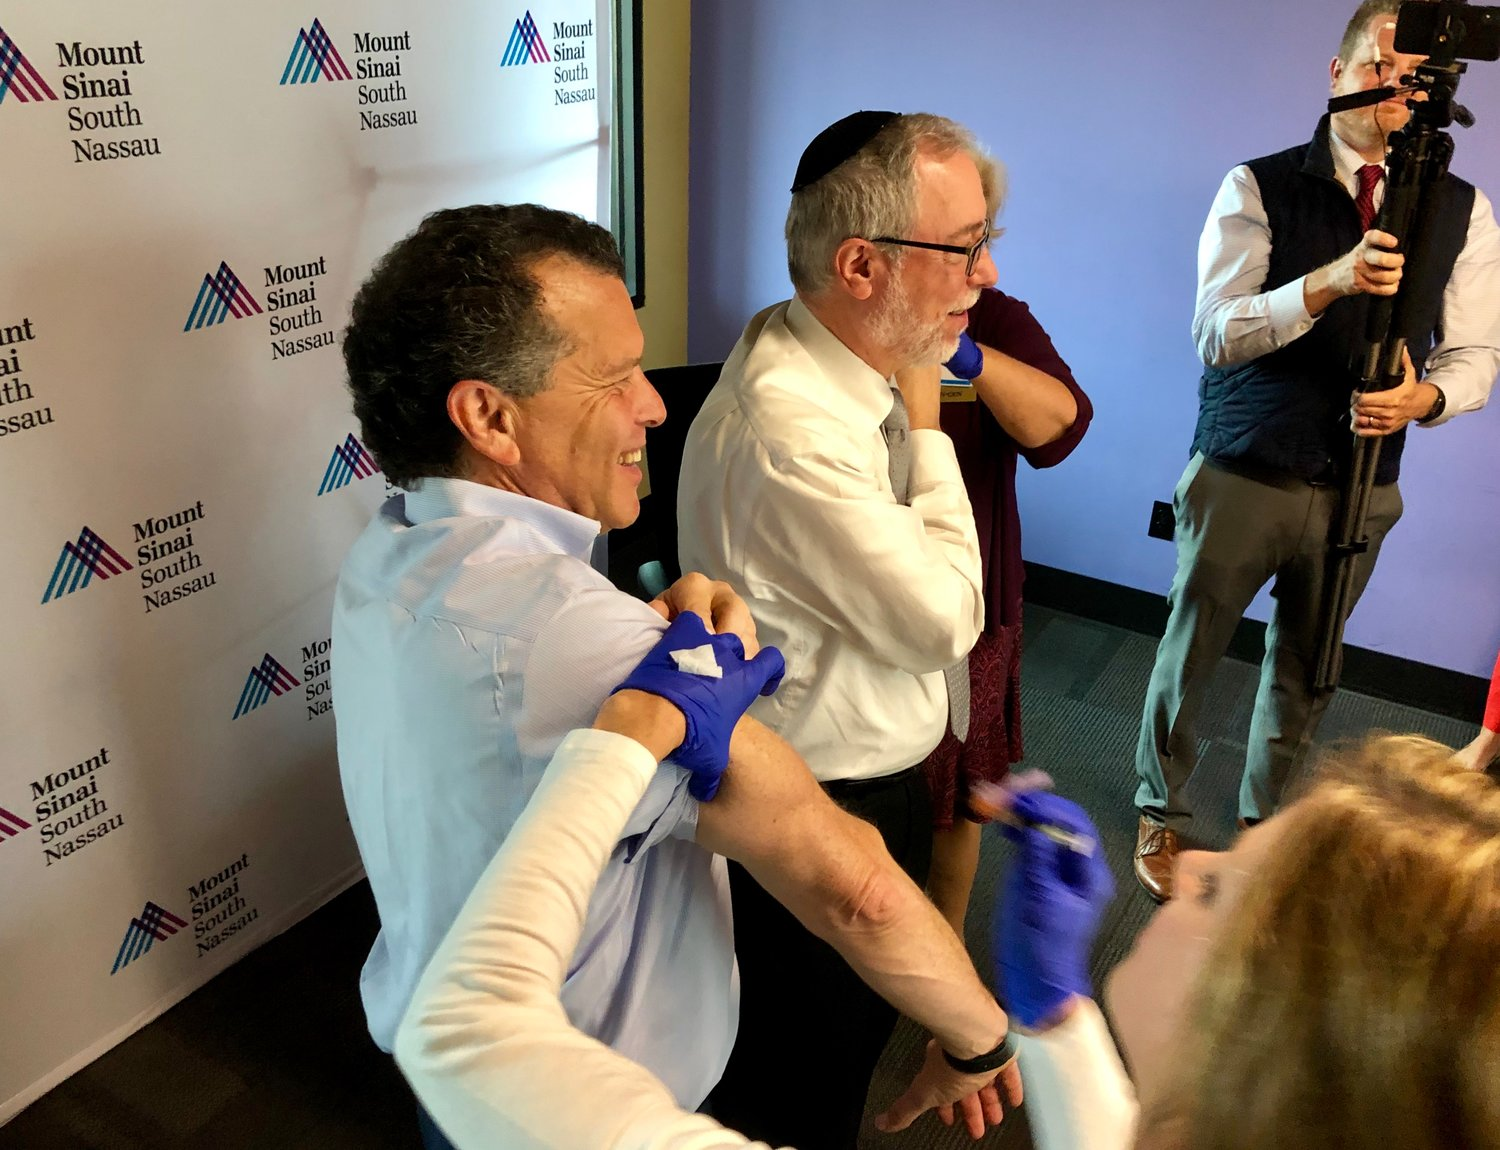 Dr. Aaron Glatt, right, chairman of the Mount Sinai South Nassau Department of Medicine, and Stuart Richner, publisher of Herald Community Newspapers, rolled up their sleeves to get their flu shots together at the Heralds' offices in Garden City on Oct. 29.